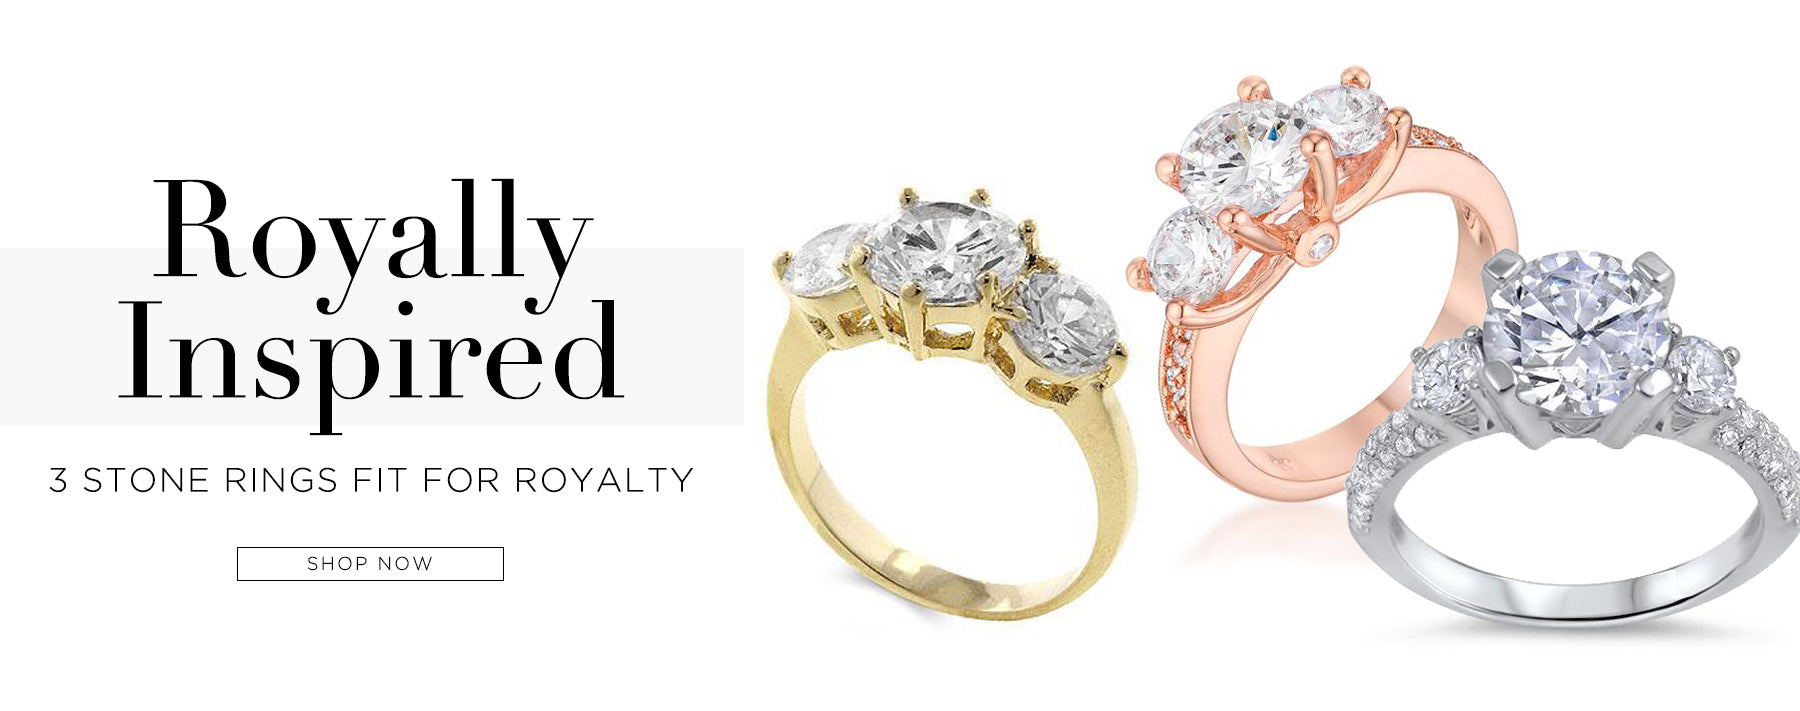 royally inspired. 3 stone rings fit for royalty.